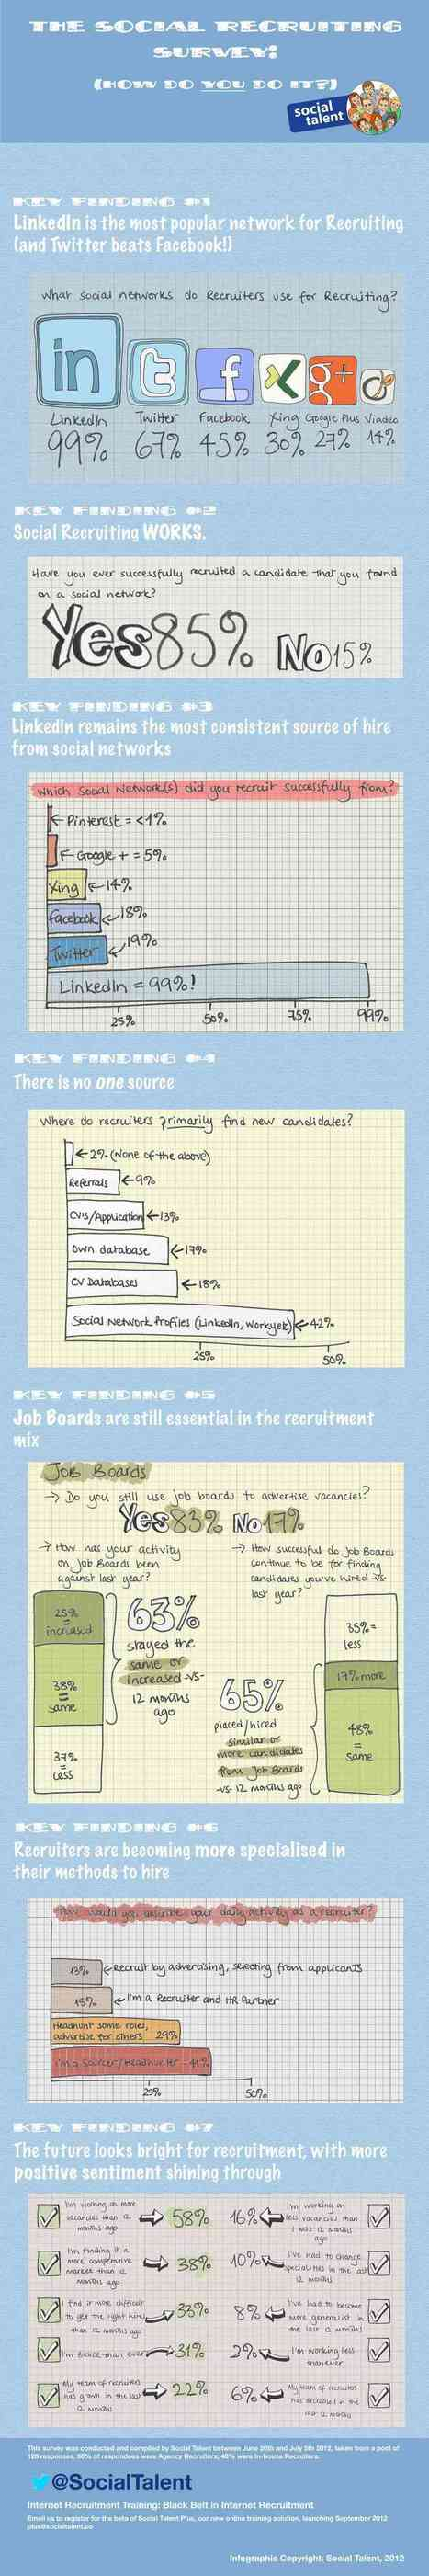 Social Recruiting Used By 85% of Recruiters - Infographic | Career Planning Tricks & Treats | Scoop.it